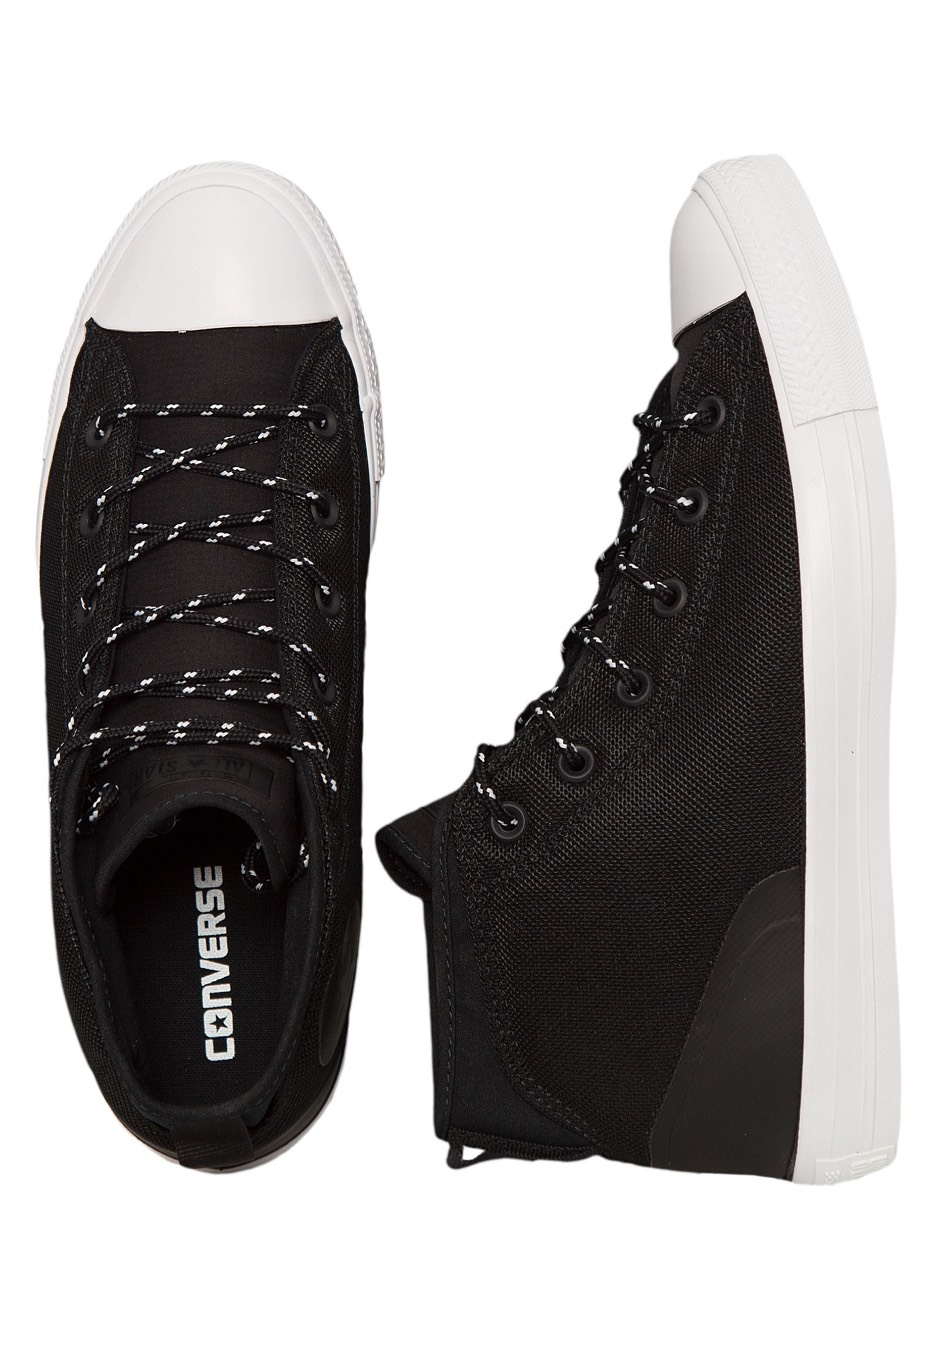 17b877ba3cf Converse - Chuck Taylor All Star Syde Street Mid Black Black White - Shoes  - Impericon.com UK